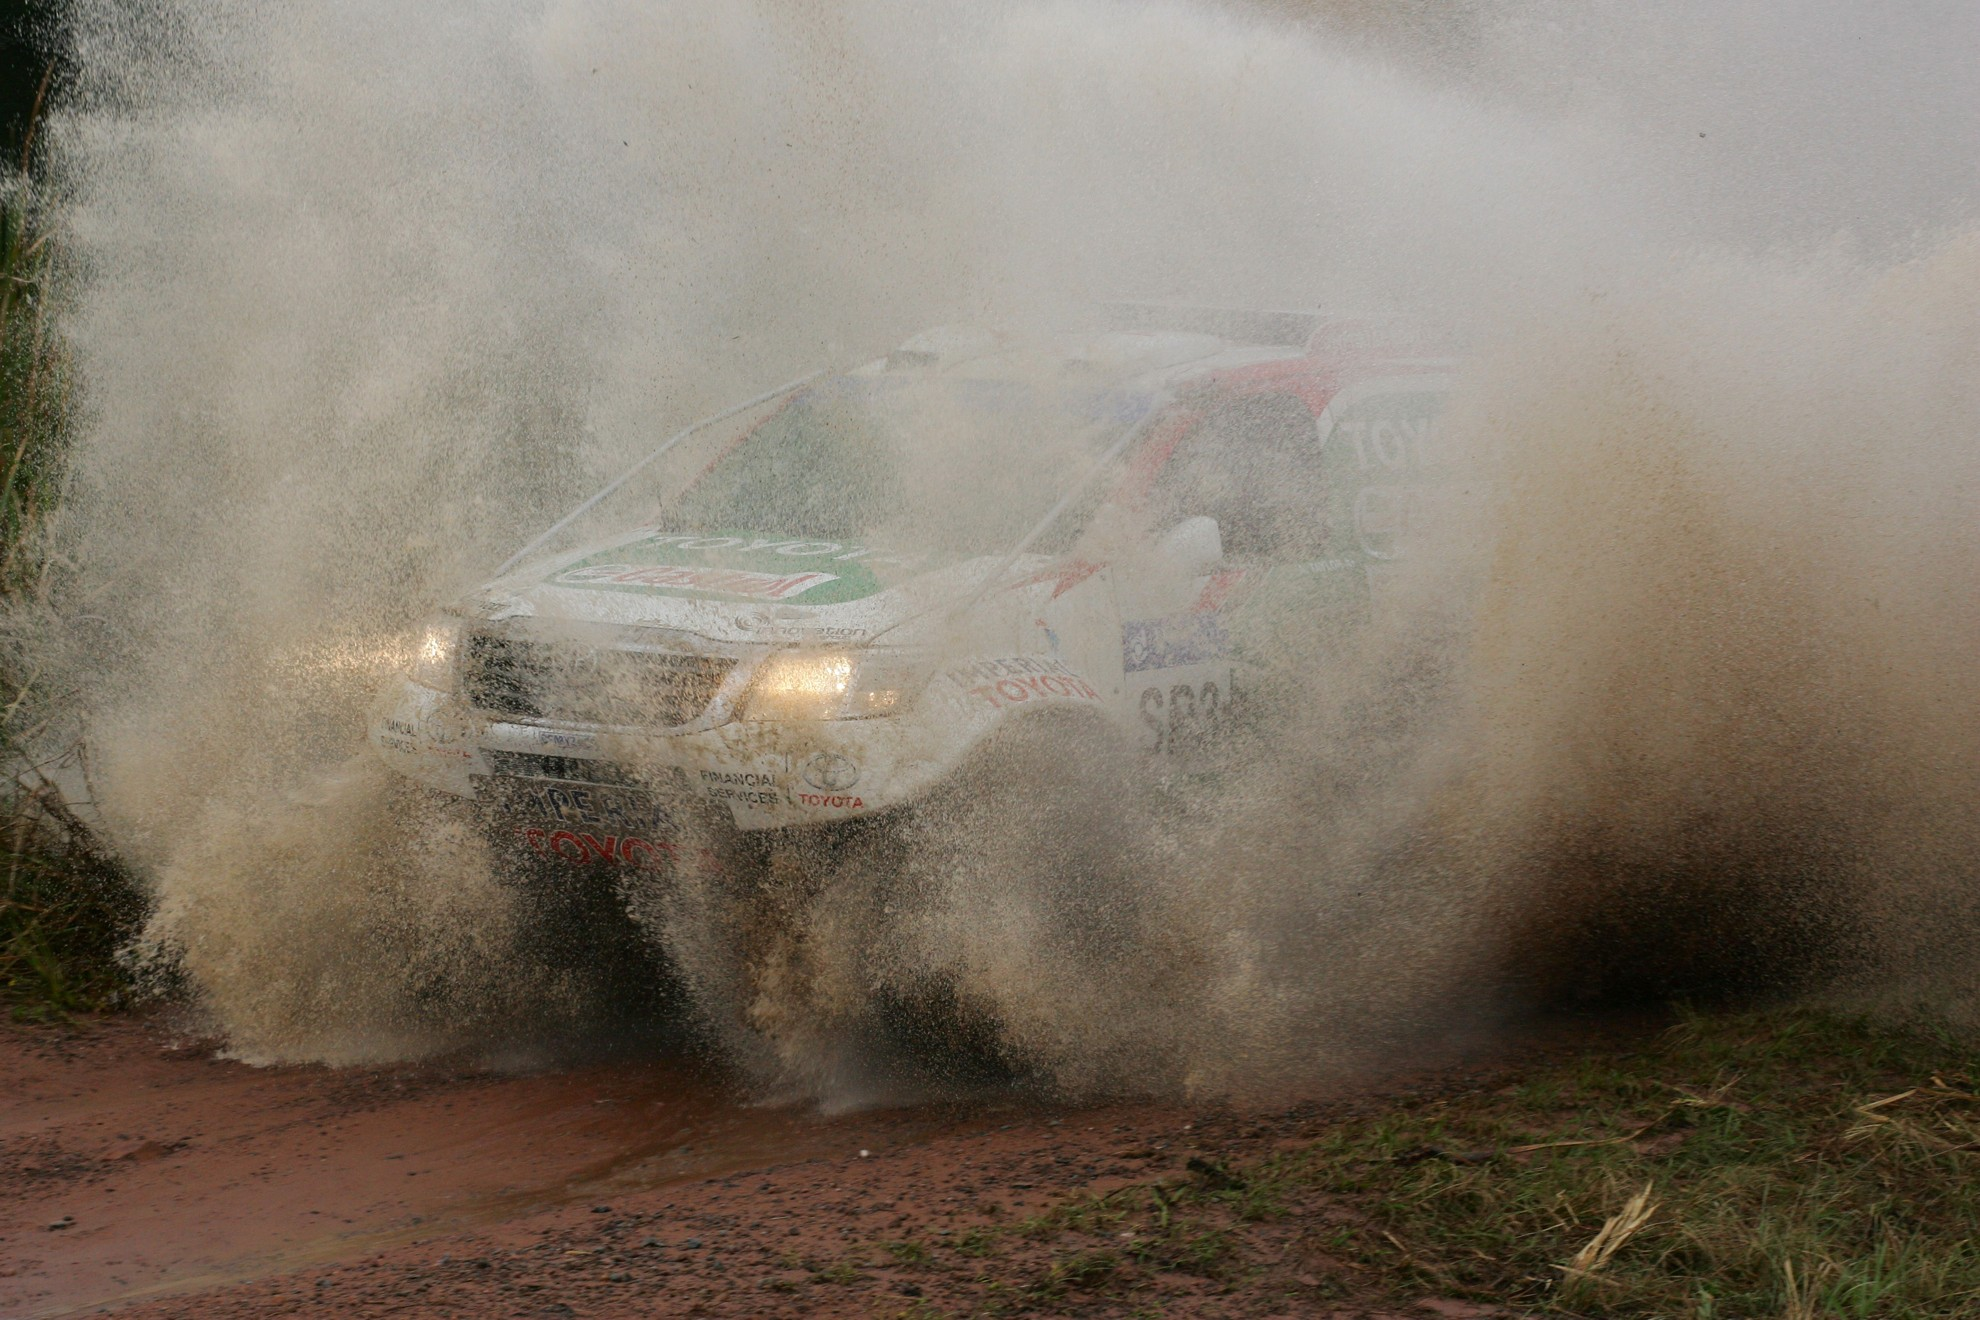 Hilux 2013 Toyota Rally